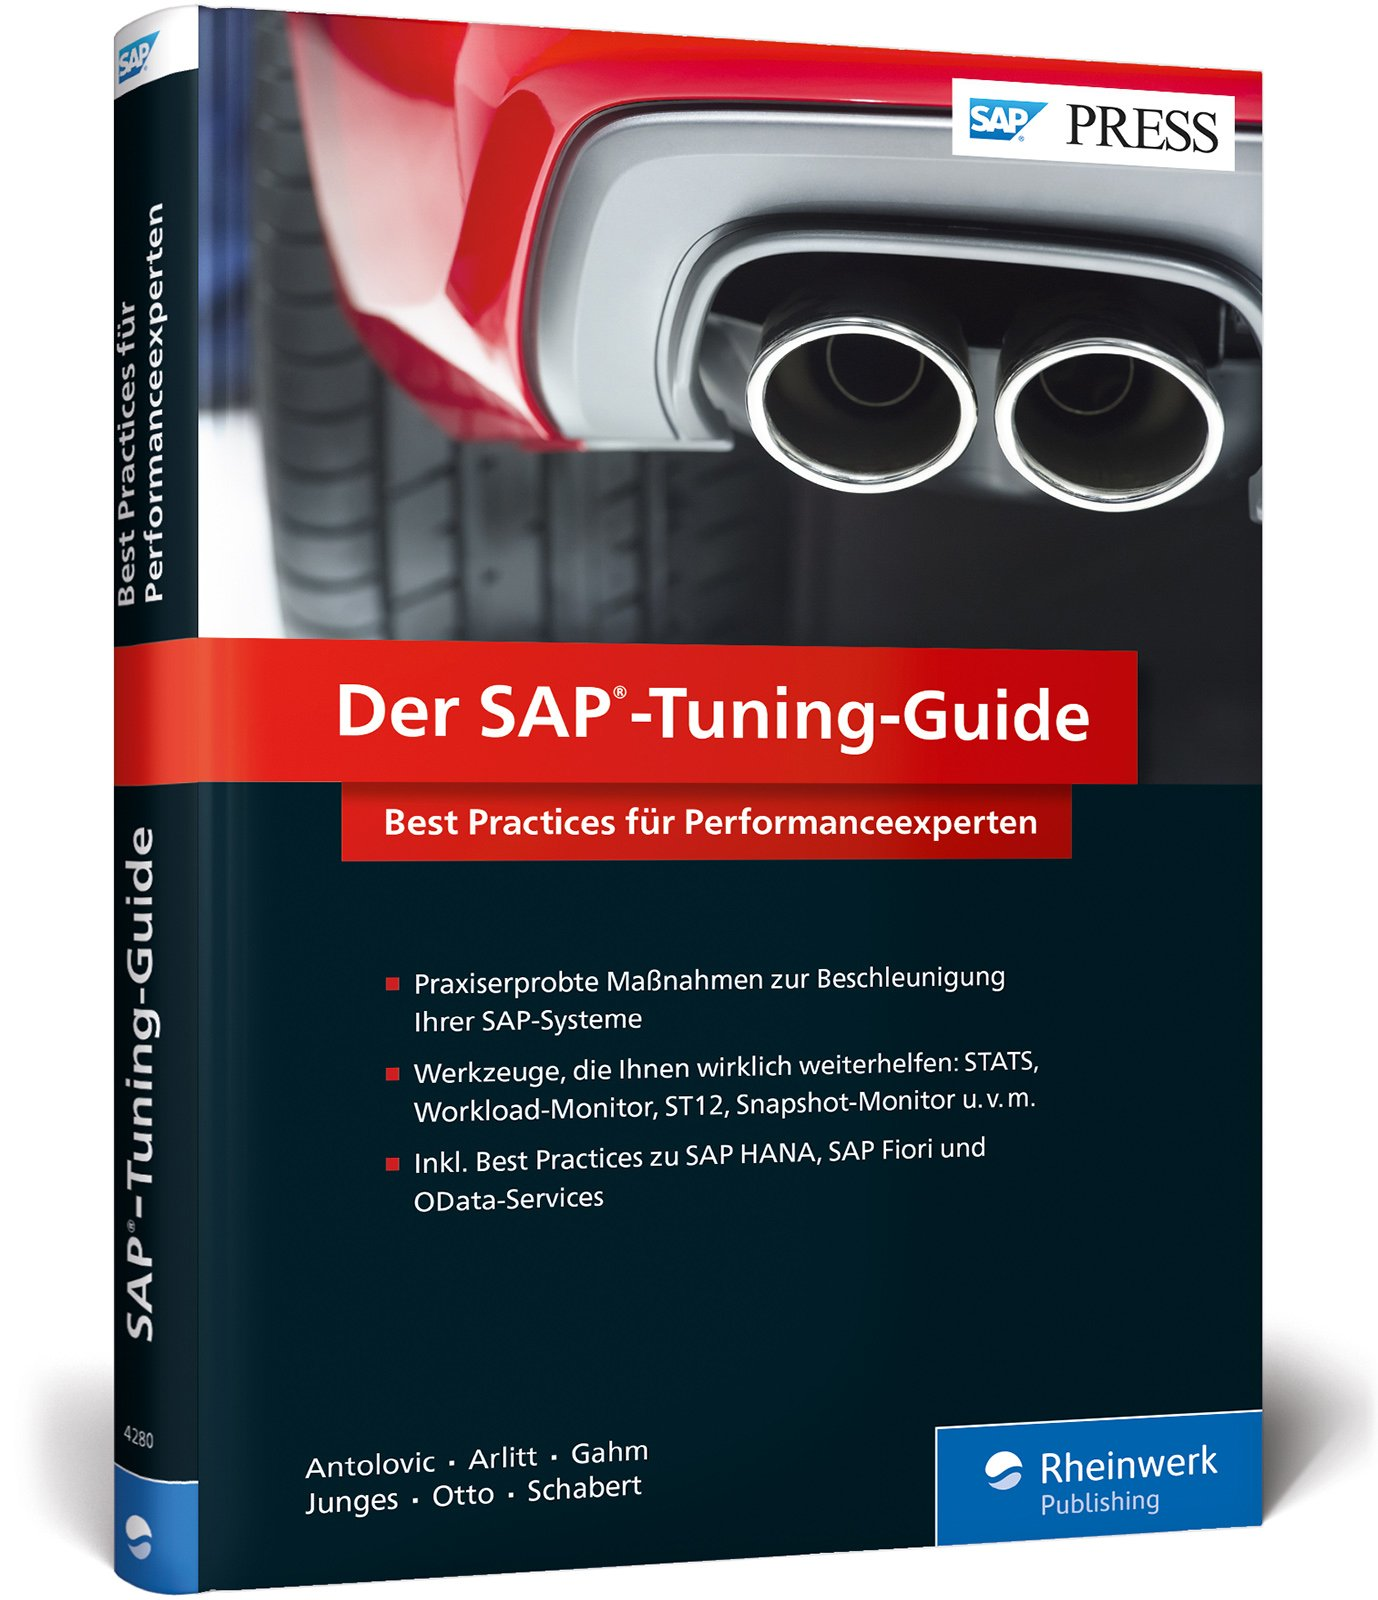 Der SAP-Tuning-Guide: Profi-Tipps zur Performanceoptimierung (SAP PRESS)